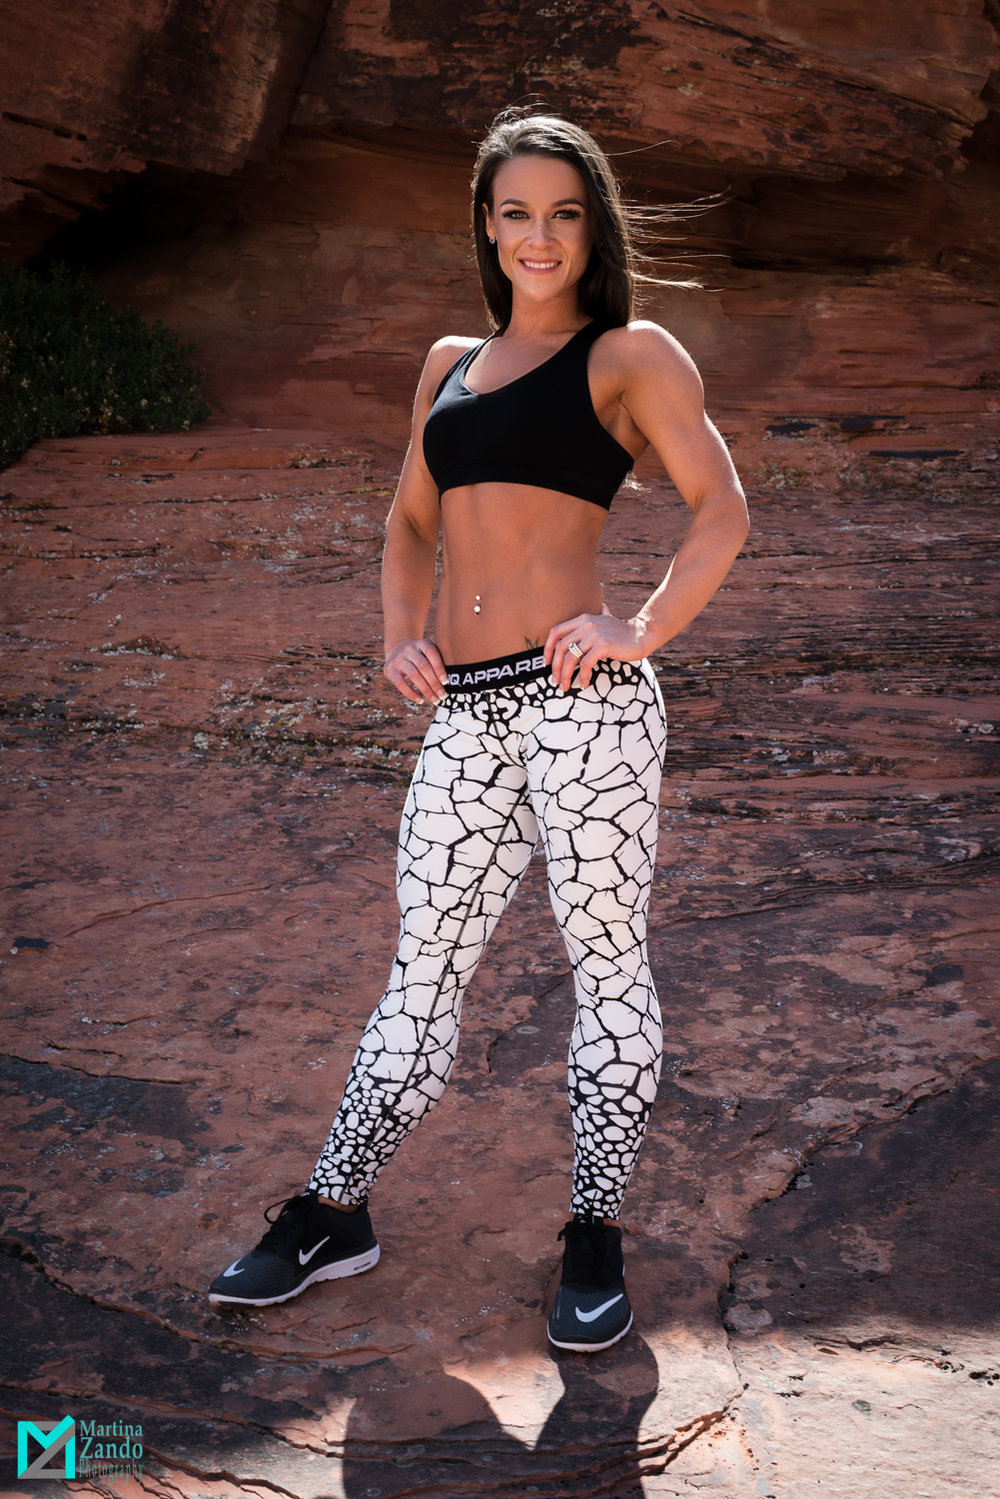 outdoor fitness photoshoot near las vegas